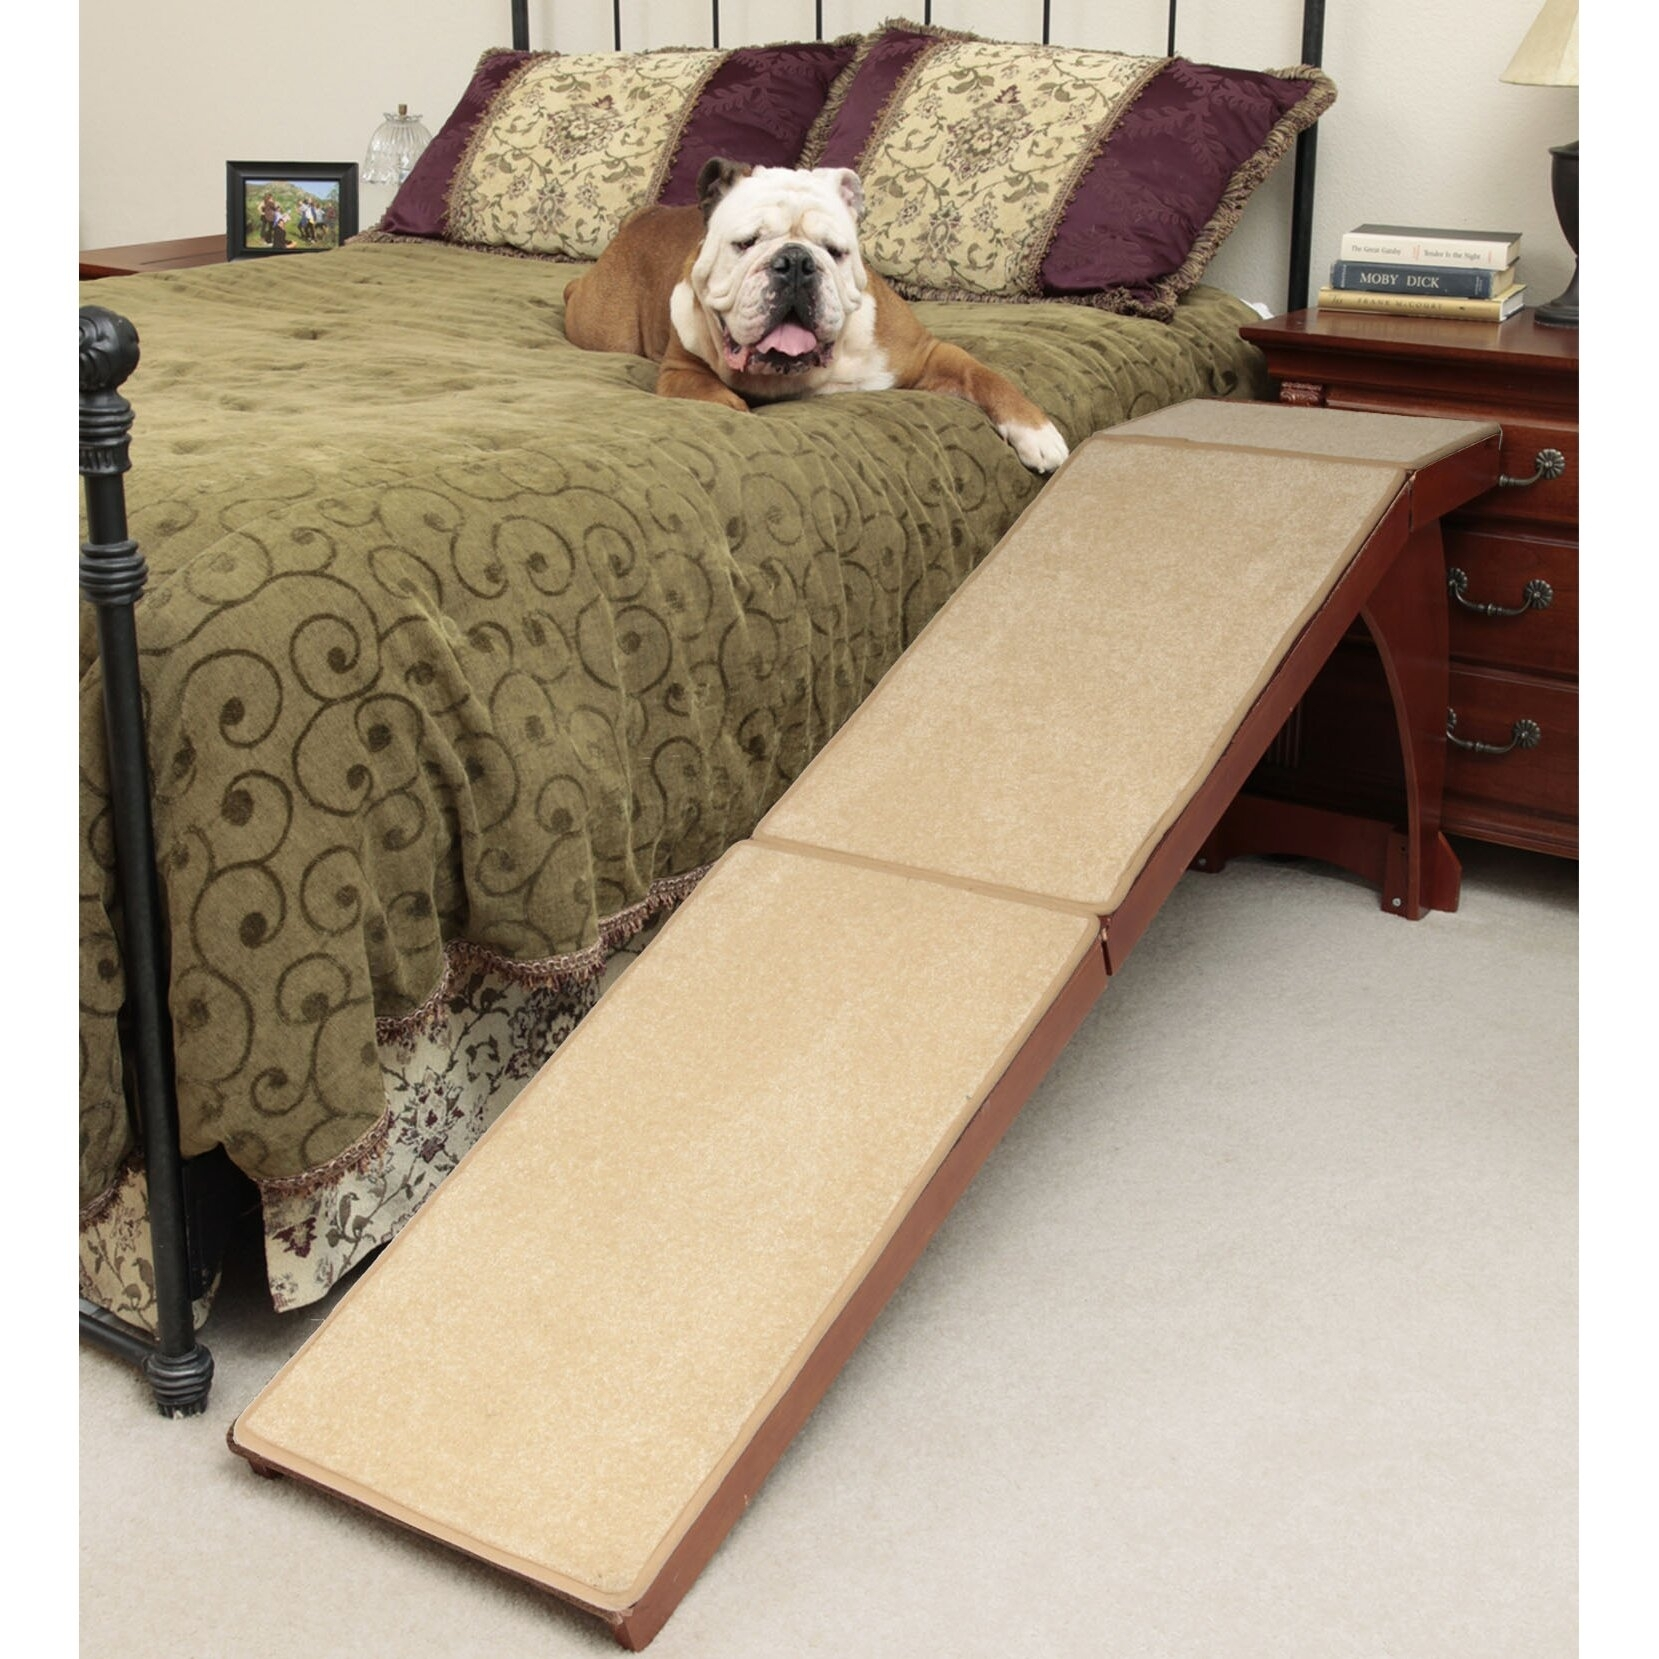 Dog Ramp For Bed You Ll Love In 2020 Visualhunt